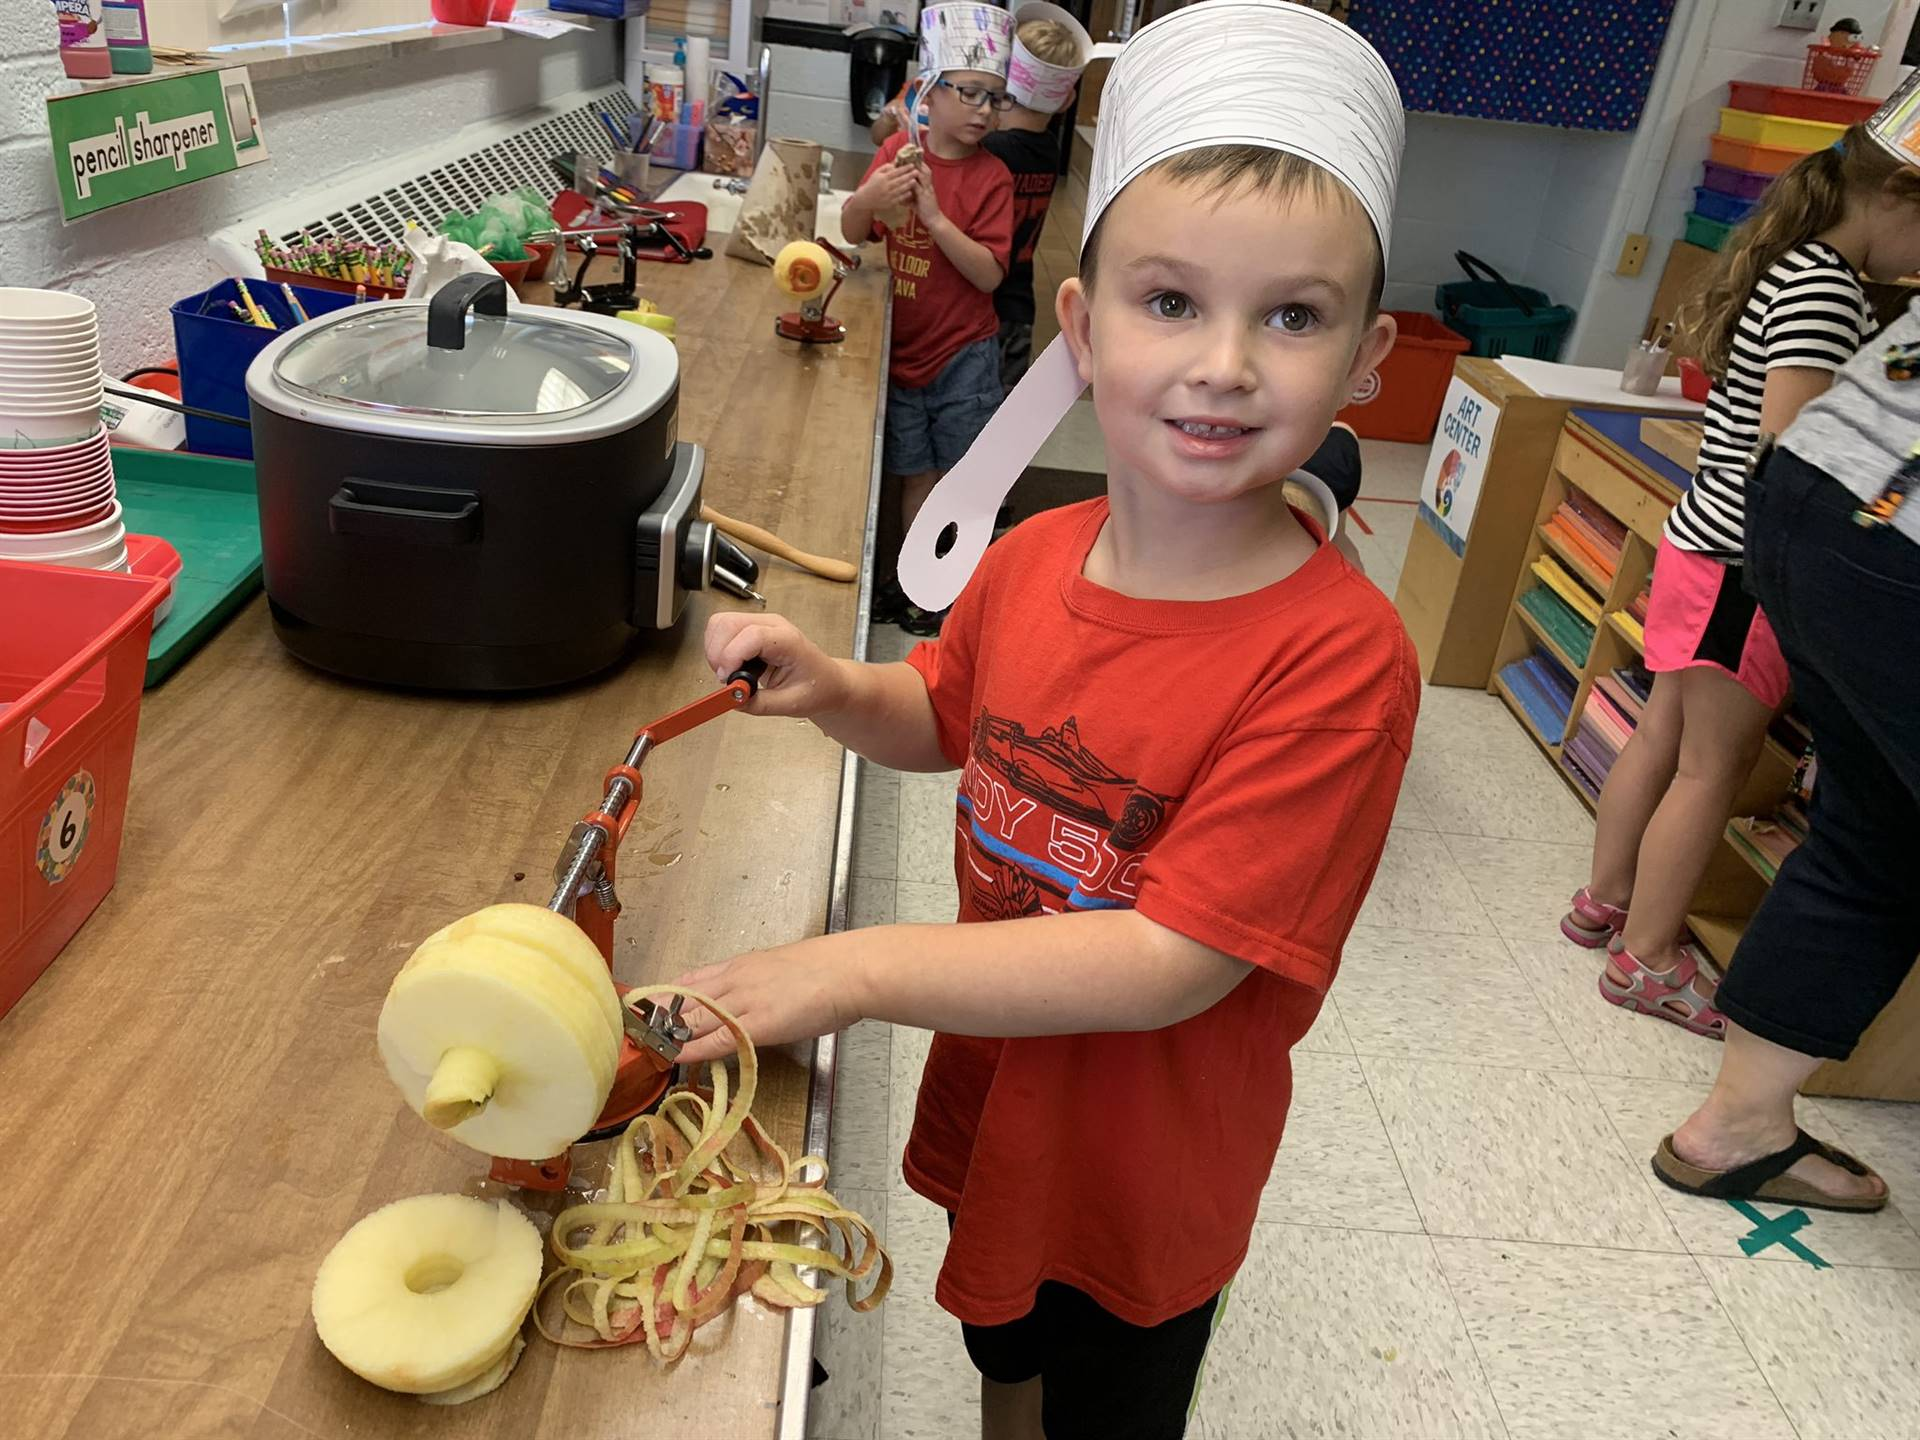 Making Applesauce in Ms. Cudo's Class